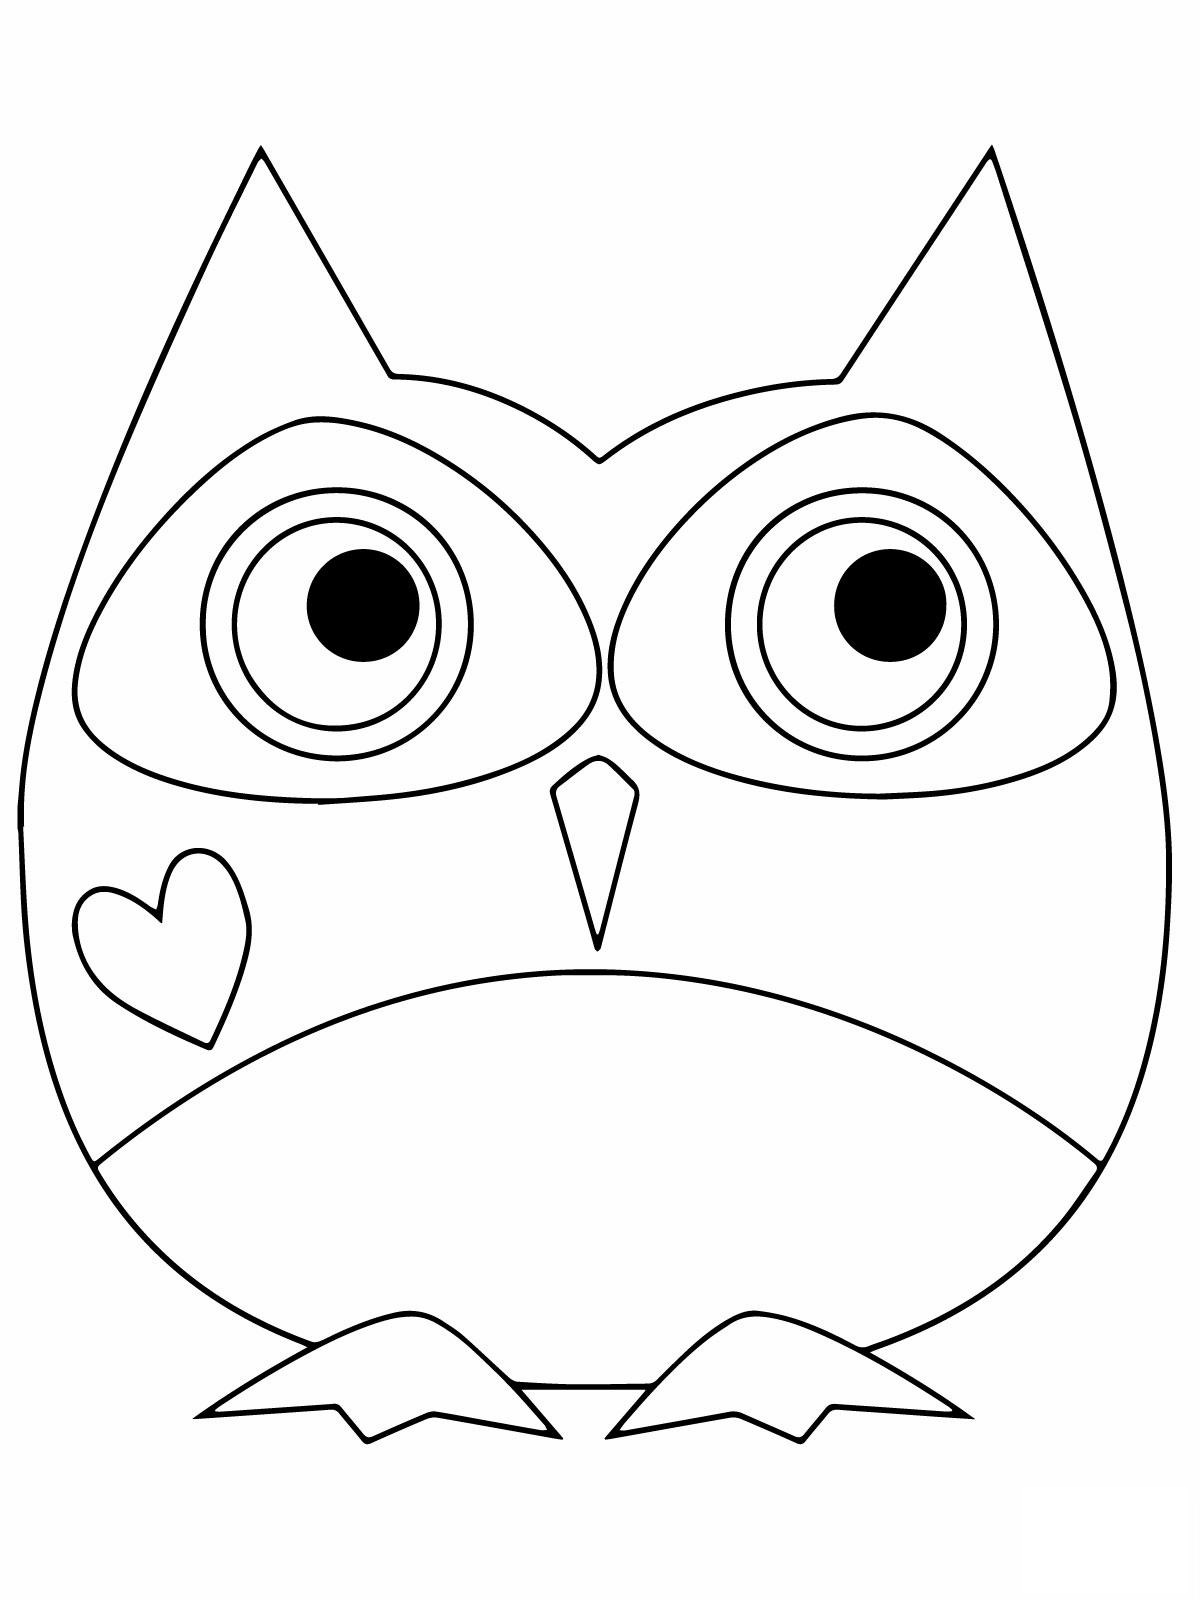 owl images to color clipart coloring sheets 10 free cliparts download images images owl color to